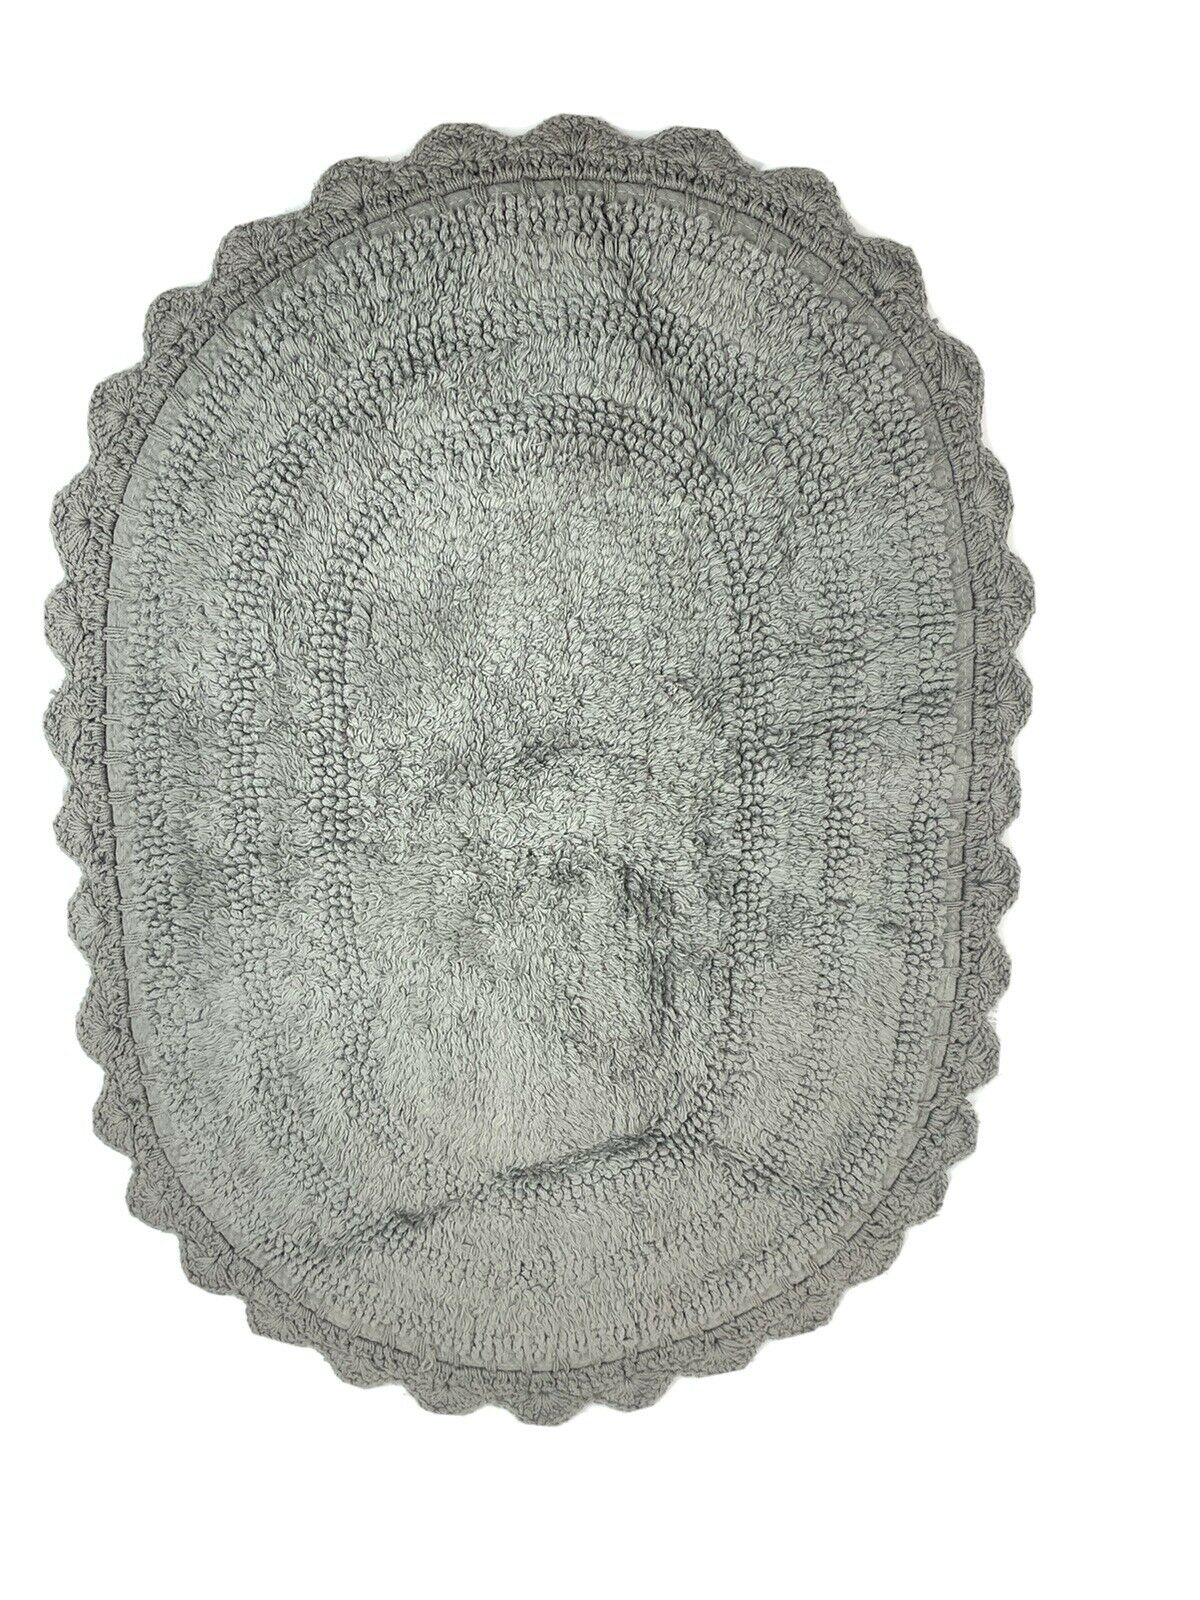 Dii Ultra Soft Spa Cotton Crochet Round Bath Mat Or Rug Place In Front Of Bath For Sale Online Ebay